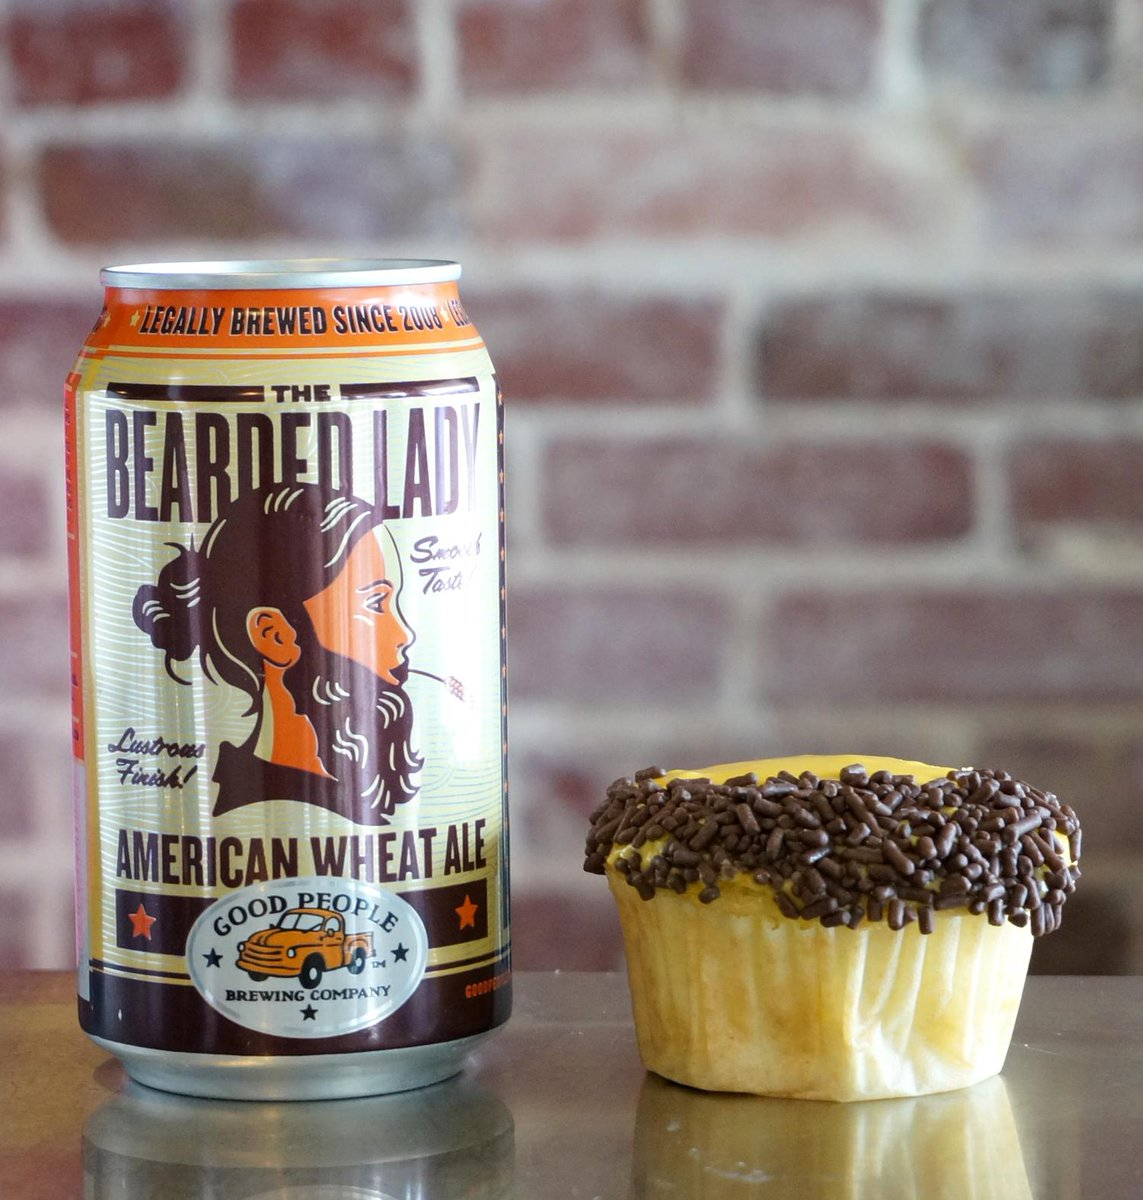 They're in the case today! @GPBrewing Bearded Lady Cupcakes! #Cupcakes #Beer http://t.co/9GQYFjziHZ